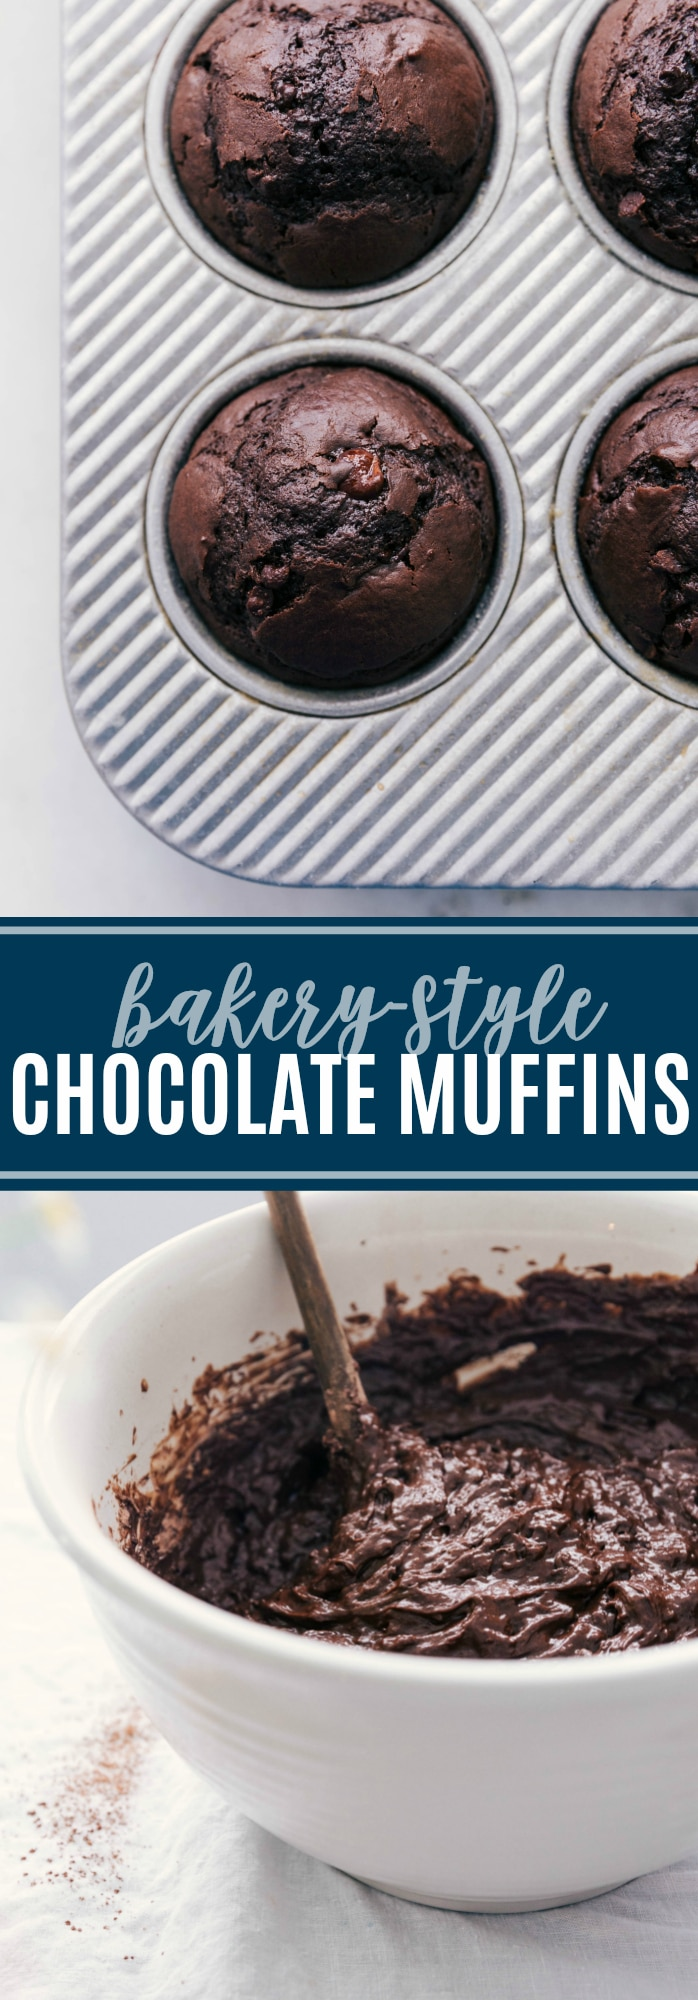 These Chocolate Muffins are a tried and tested bakery-style recipe! Learn the tricks to moist, delicious, and flavorful chocolate muffins. via chelseasmessyapron.com #chocolate #muffins #easy #quick #muffin #kidfriendly #best #recipe #bakery #style #chocolates #chips #breakfast #brunch #dessert #snack #treat